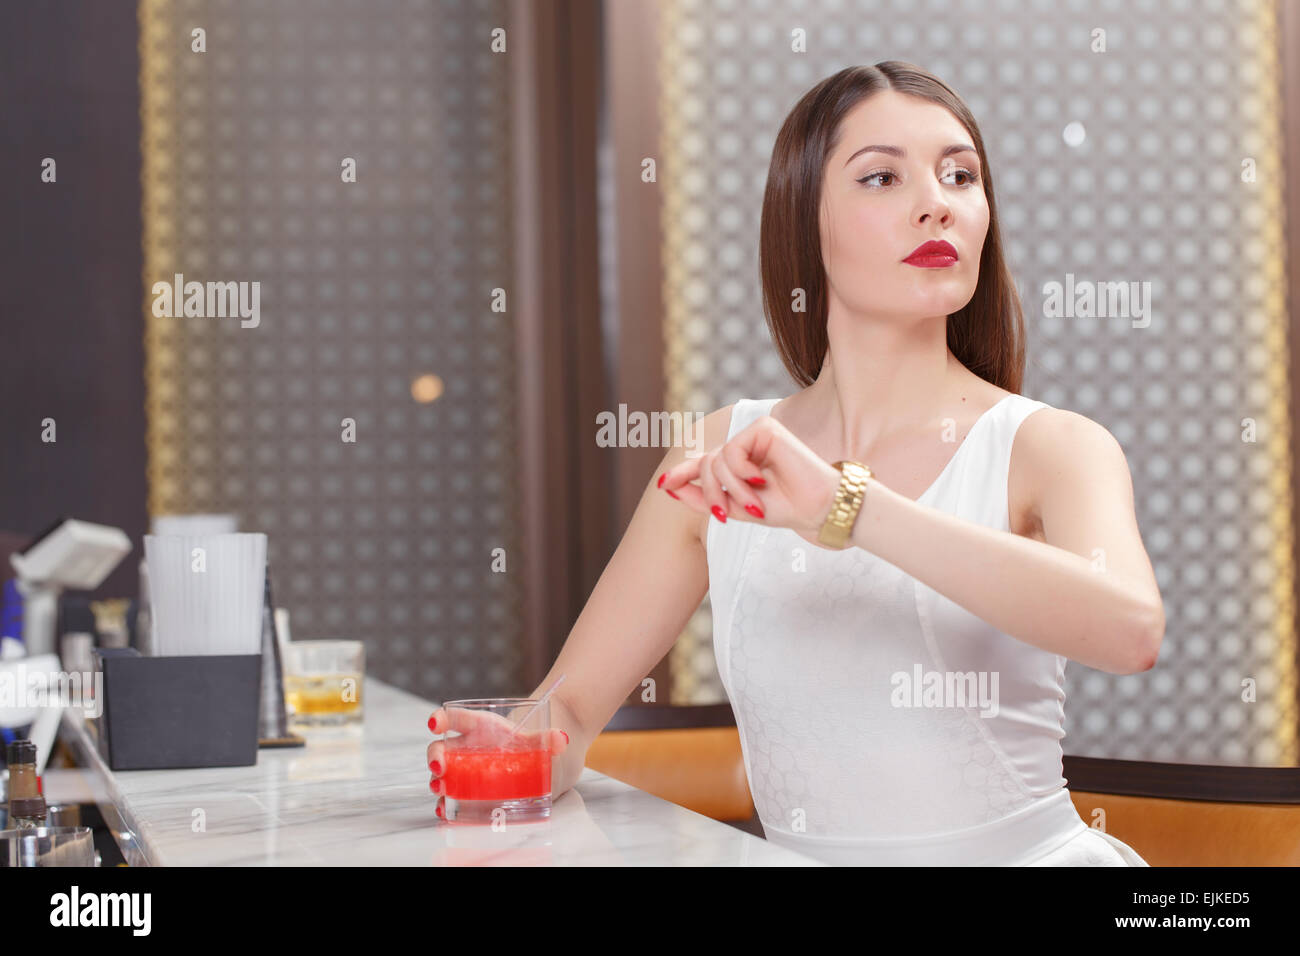 Woman looks at her watch - Stock Image